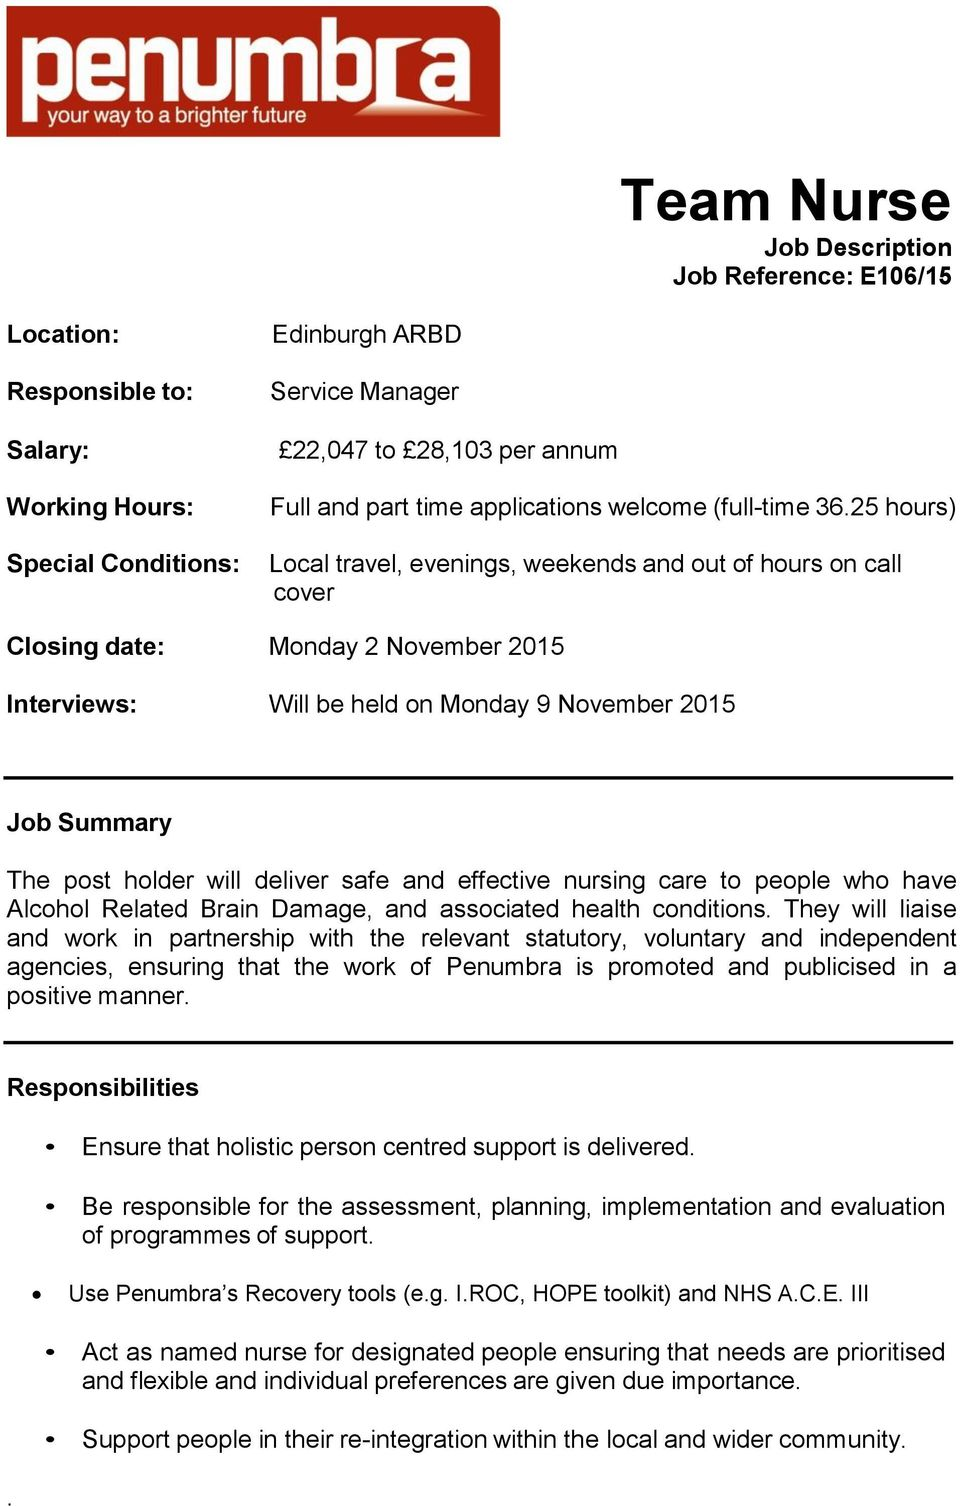 25 hours) Local travel, evenings, weekends and out of hours on call cover Closing date: Monday 2 November 2015 Interviews: Will be held on Monday 9 November 2015 Job Summary The post holder will